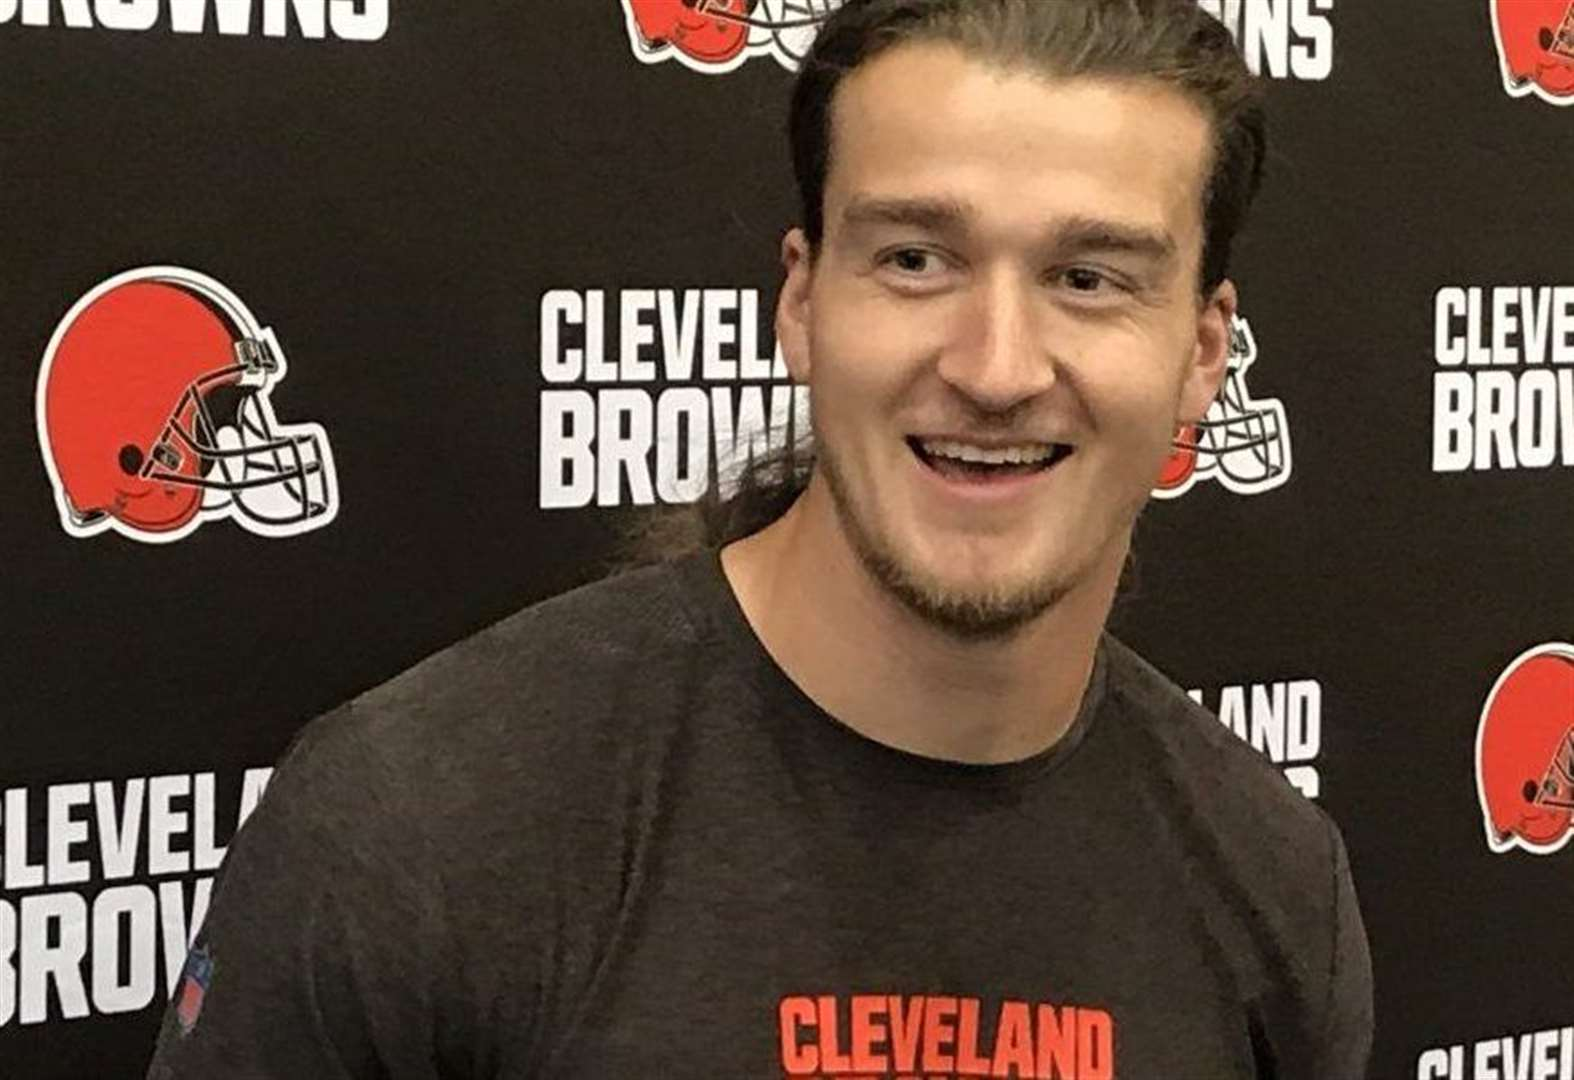 Inverness American footballer picked up by Cleveland Browns